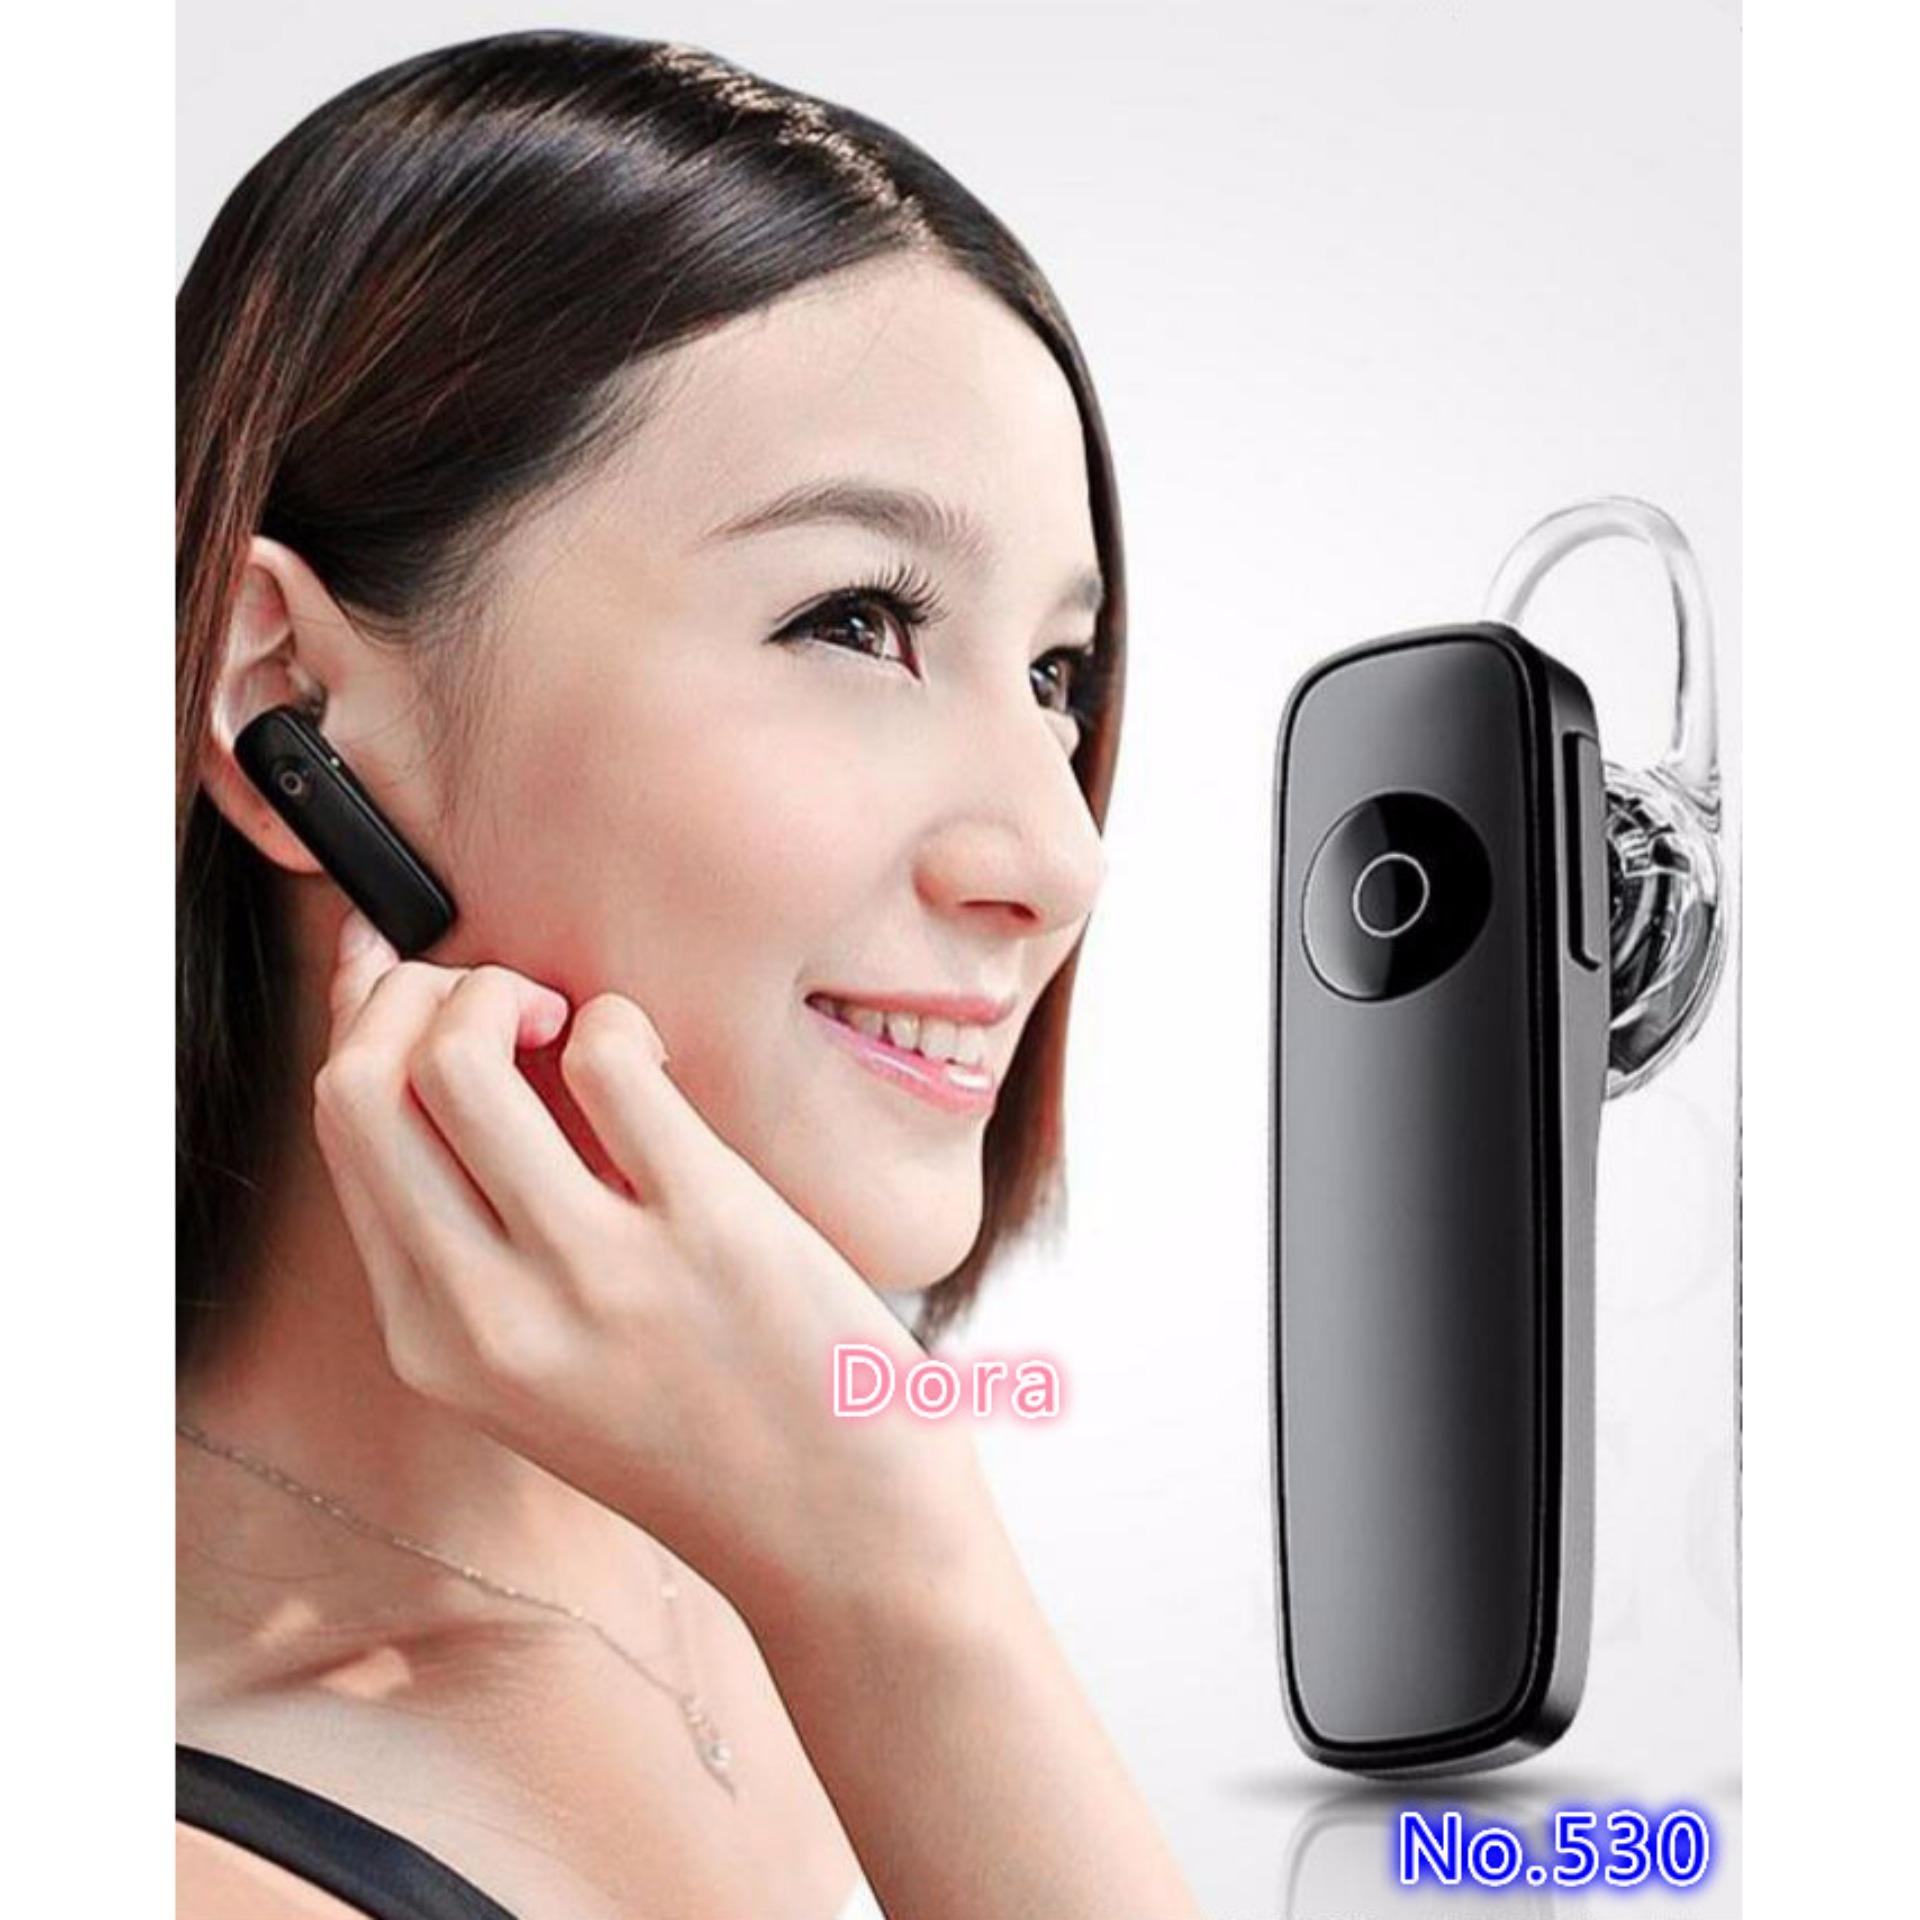 Handsfree Untuk Oppo Headseat Hedseat Hedset Headset Bluetooth Wireless Mono 4 1 Stereo Headset Gratis Audio Bluetooth Kompatible Dengan Xiaomi Vivo Samsung Dan Asus Lls89 Lazada Indonesia